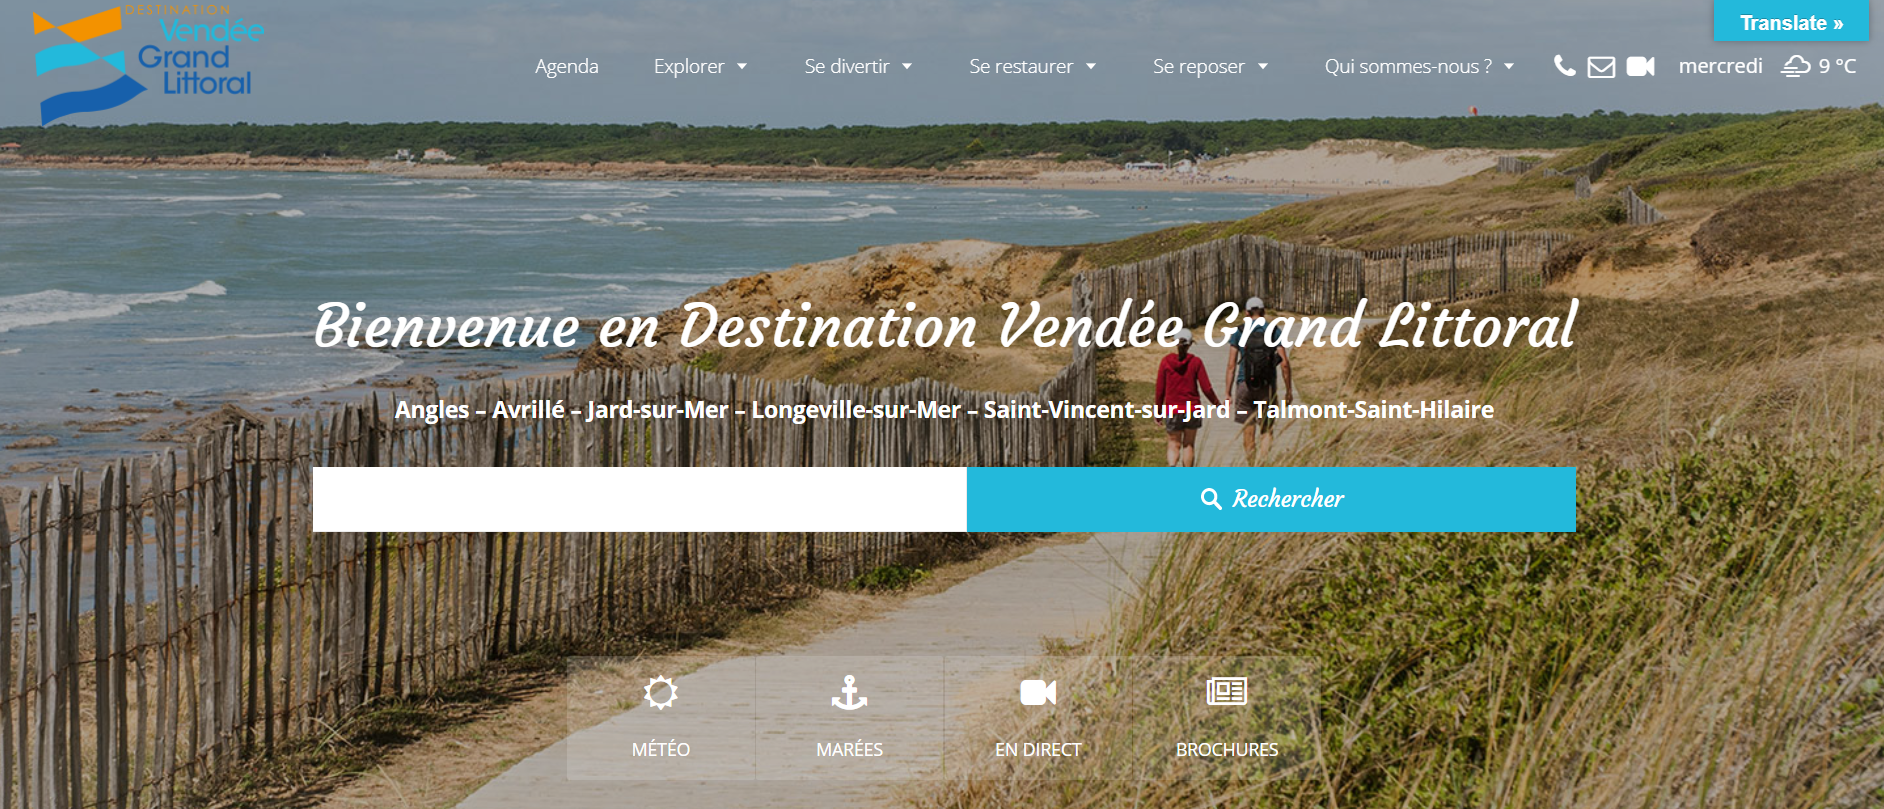 Office de tourisme destination vend e grand littoral - Office du tourisme les contamines montjoie ...